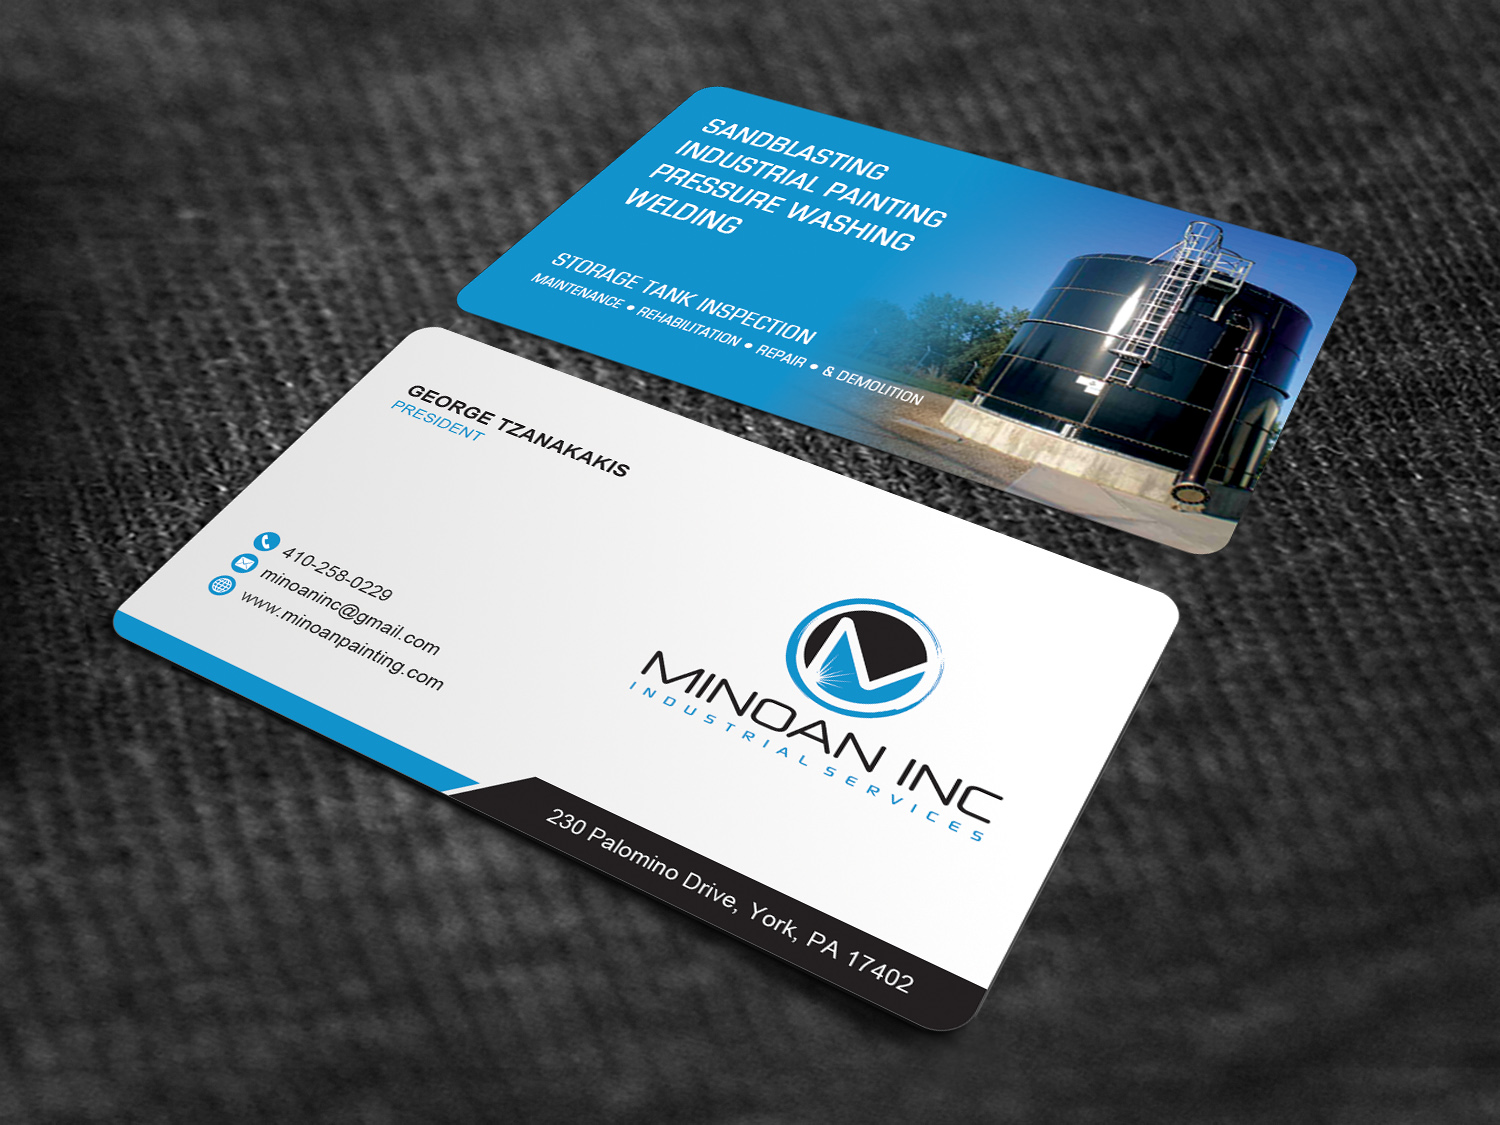 Serious masculine construction business card design for minoan business card design by sandaruwan for minoan inc design 18287567 reheart Image collections